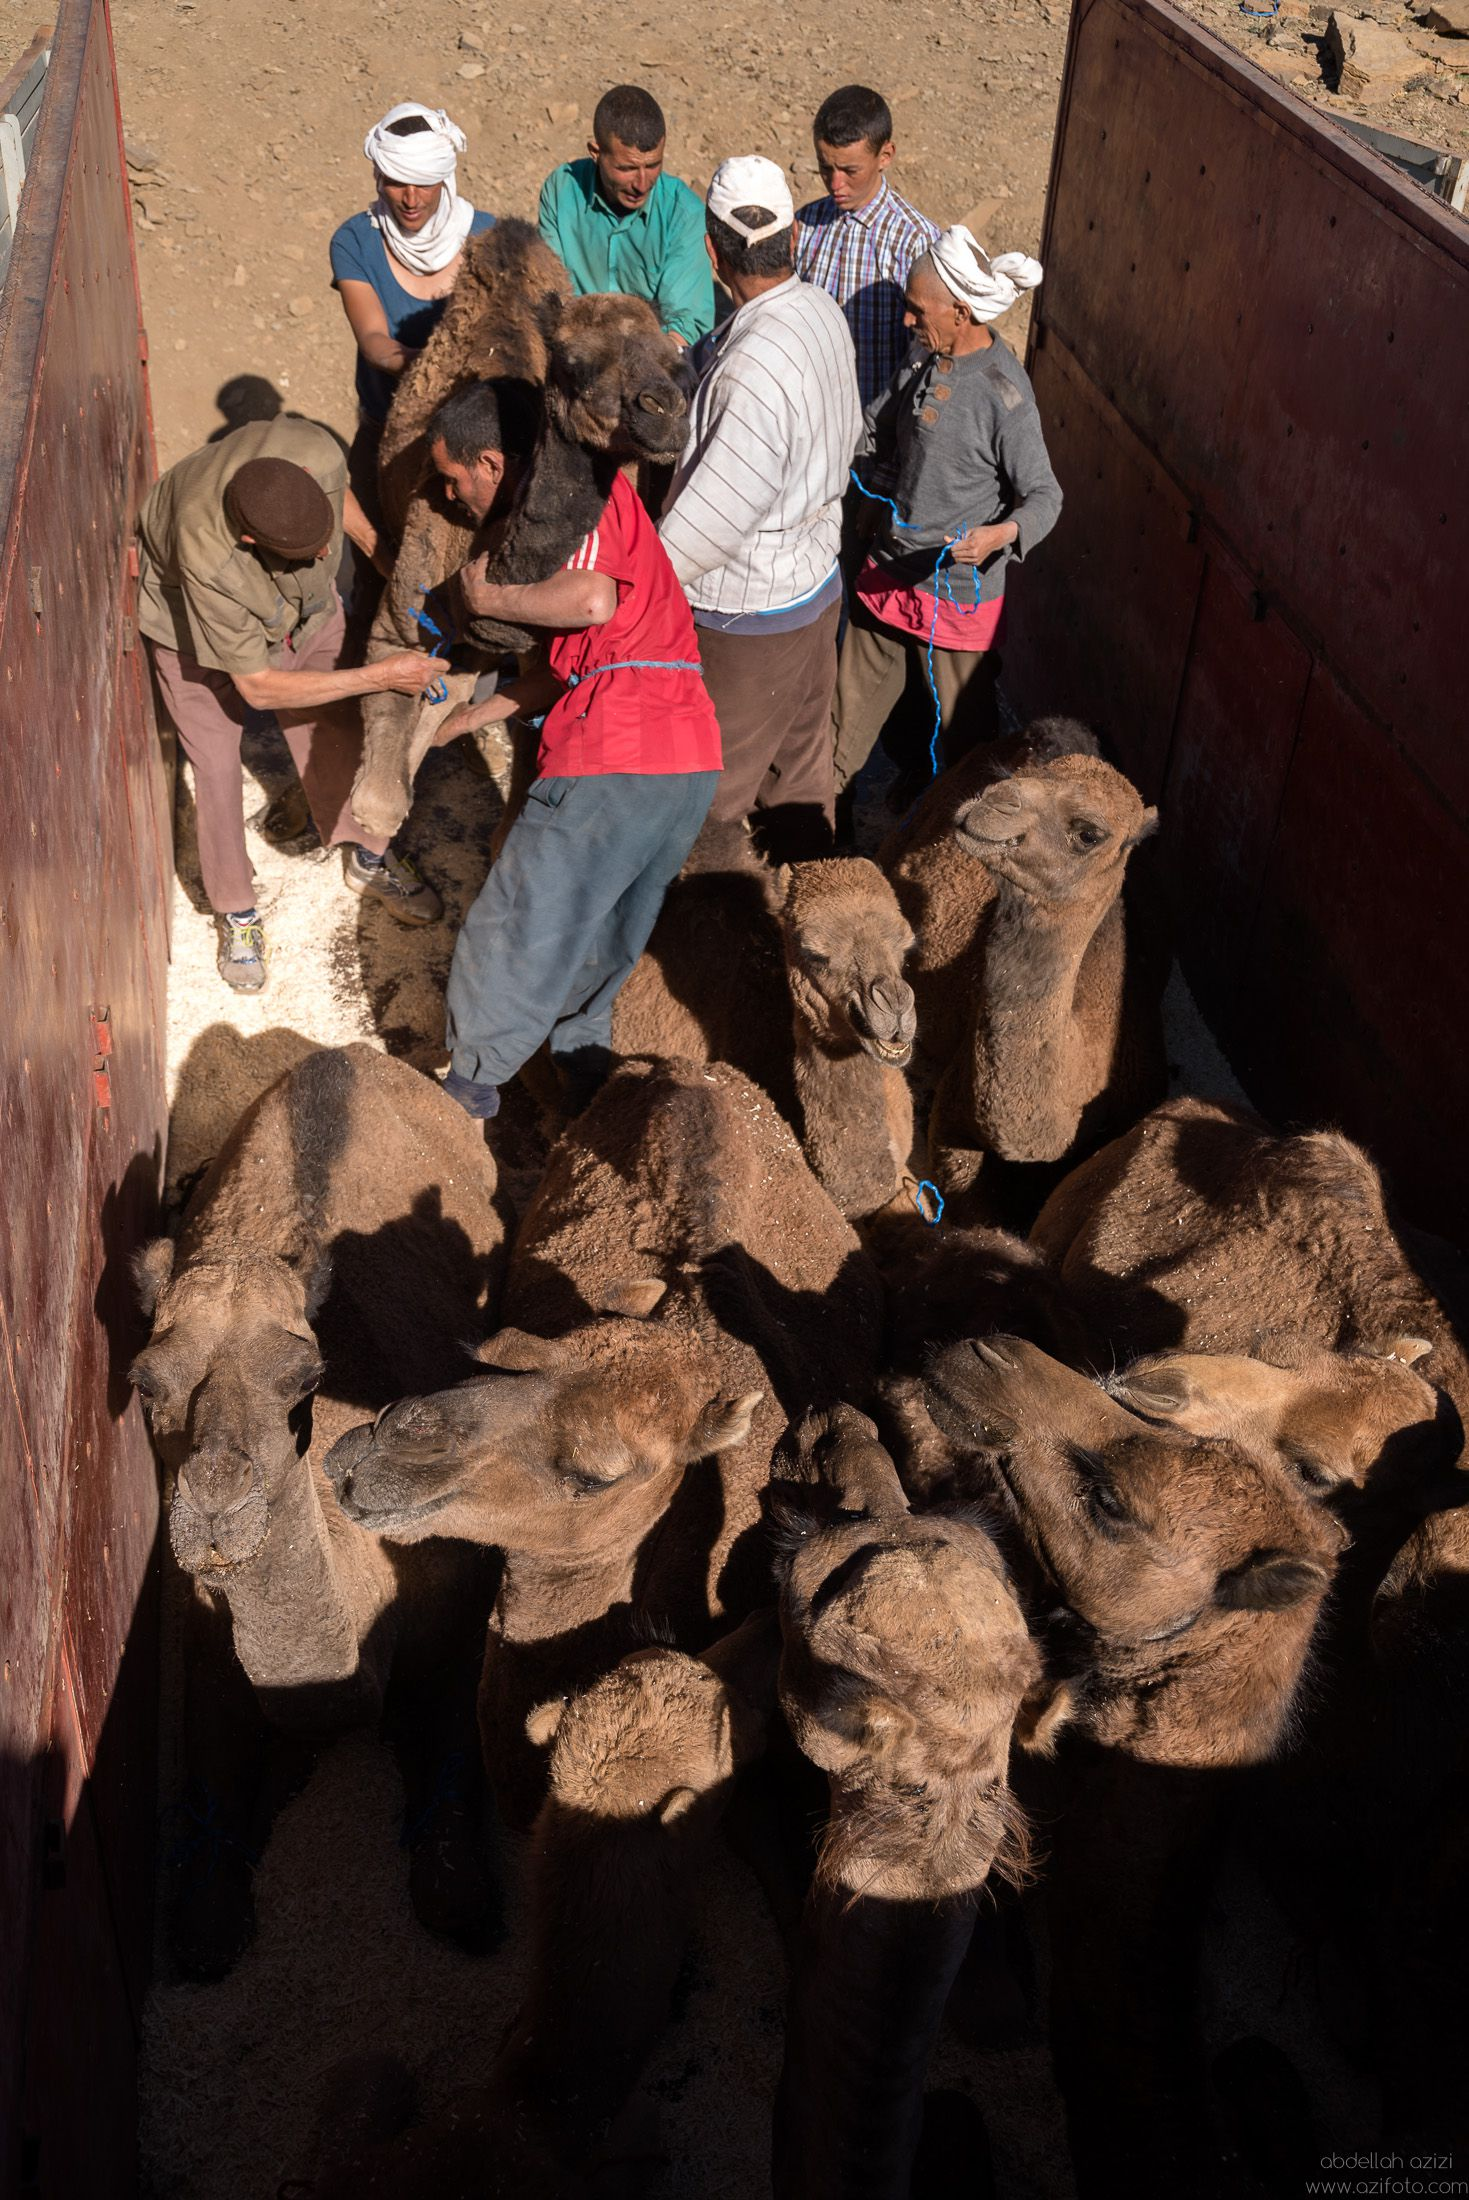 Loading camels to truck